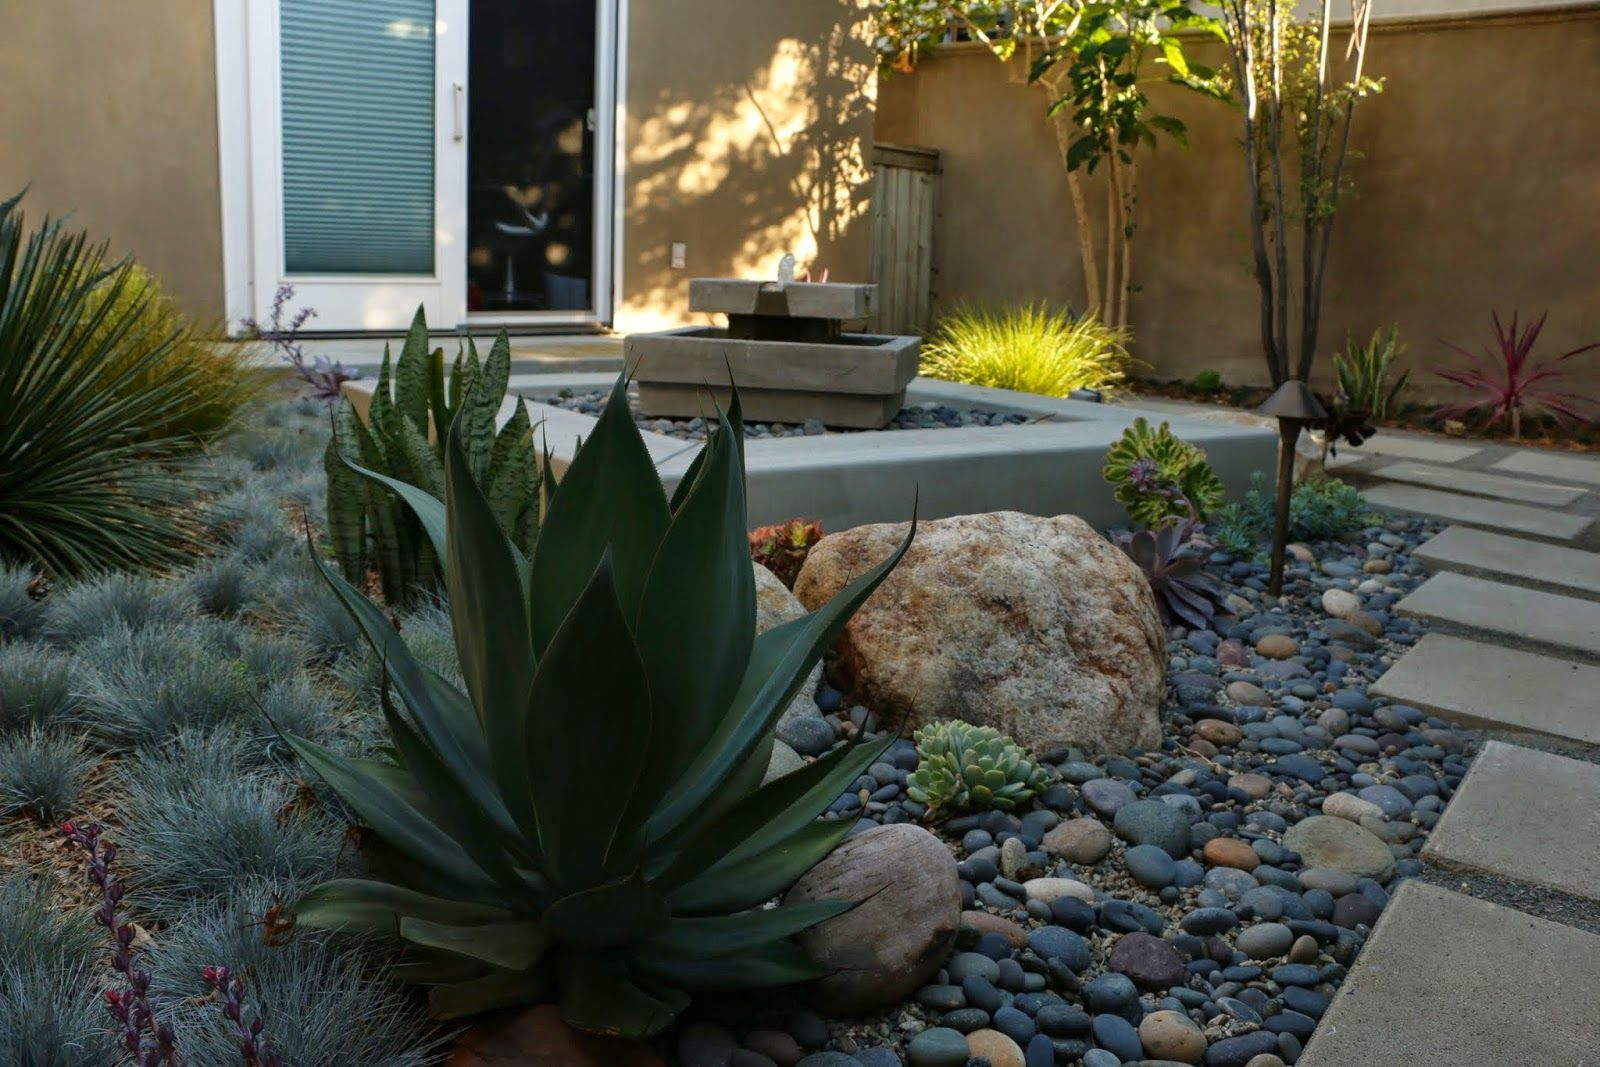 Mid Century Modern Drought Tolerant Landscaping Goes In After Years Of Neglect Southern California Yard